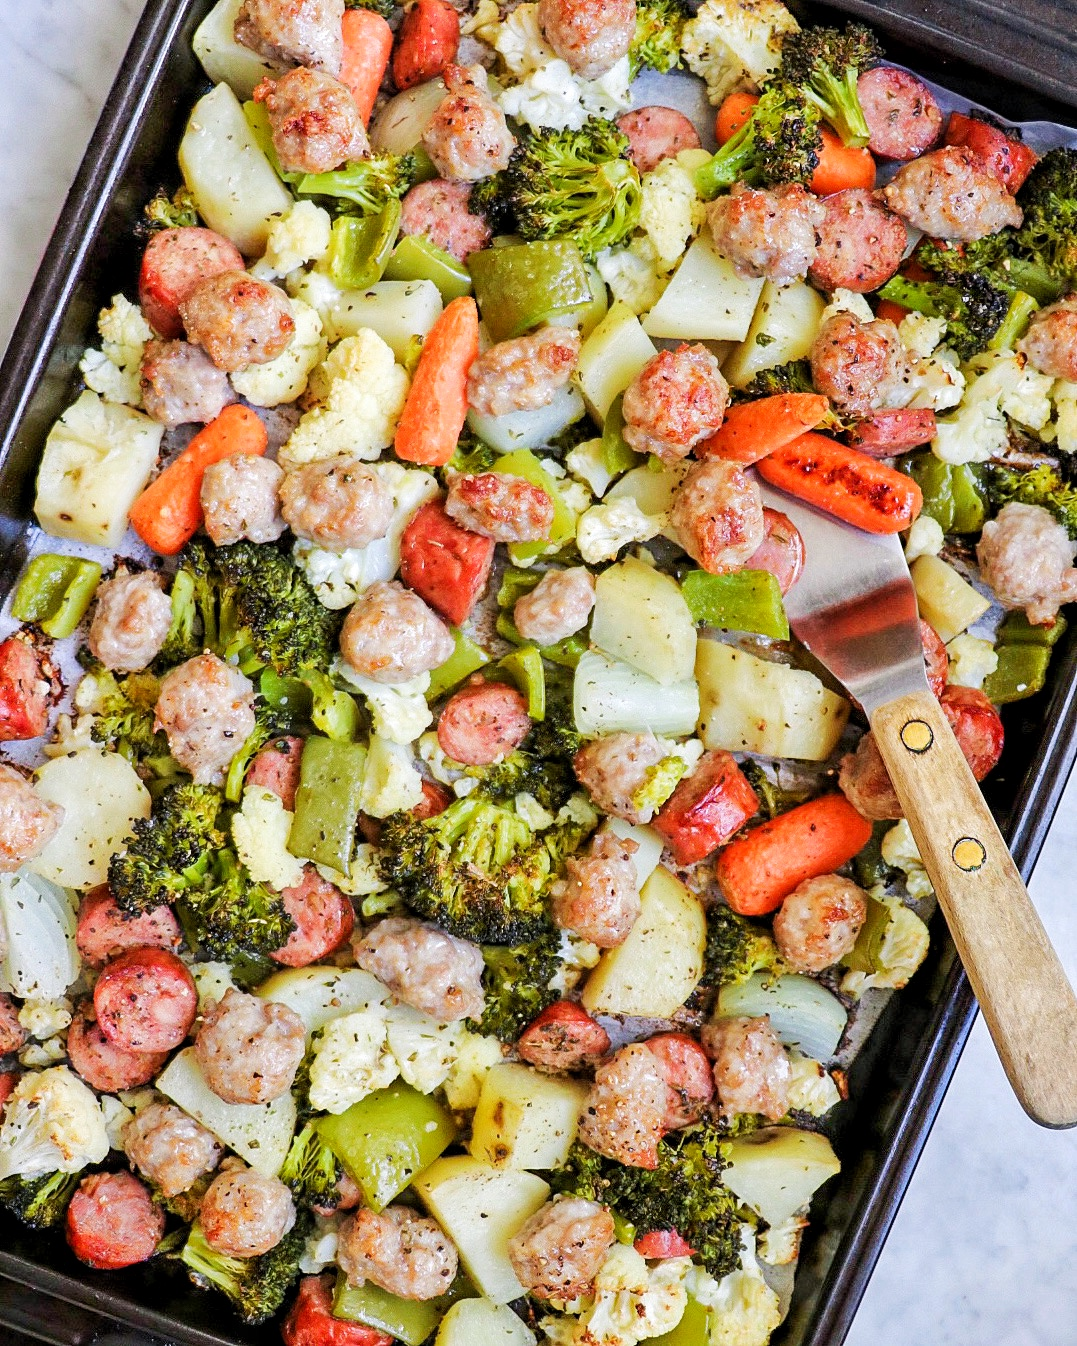 Sheet Pan Dinner with Sausage and Roasted Vegetables